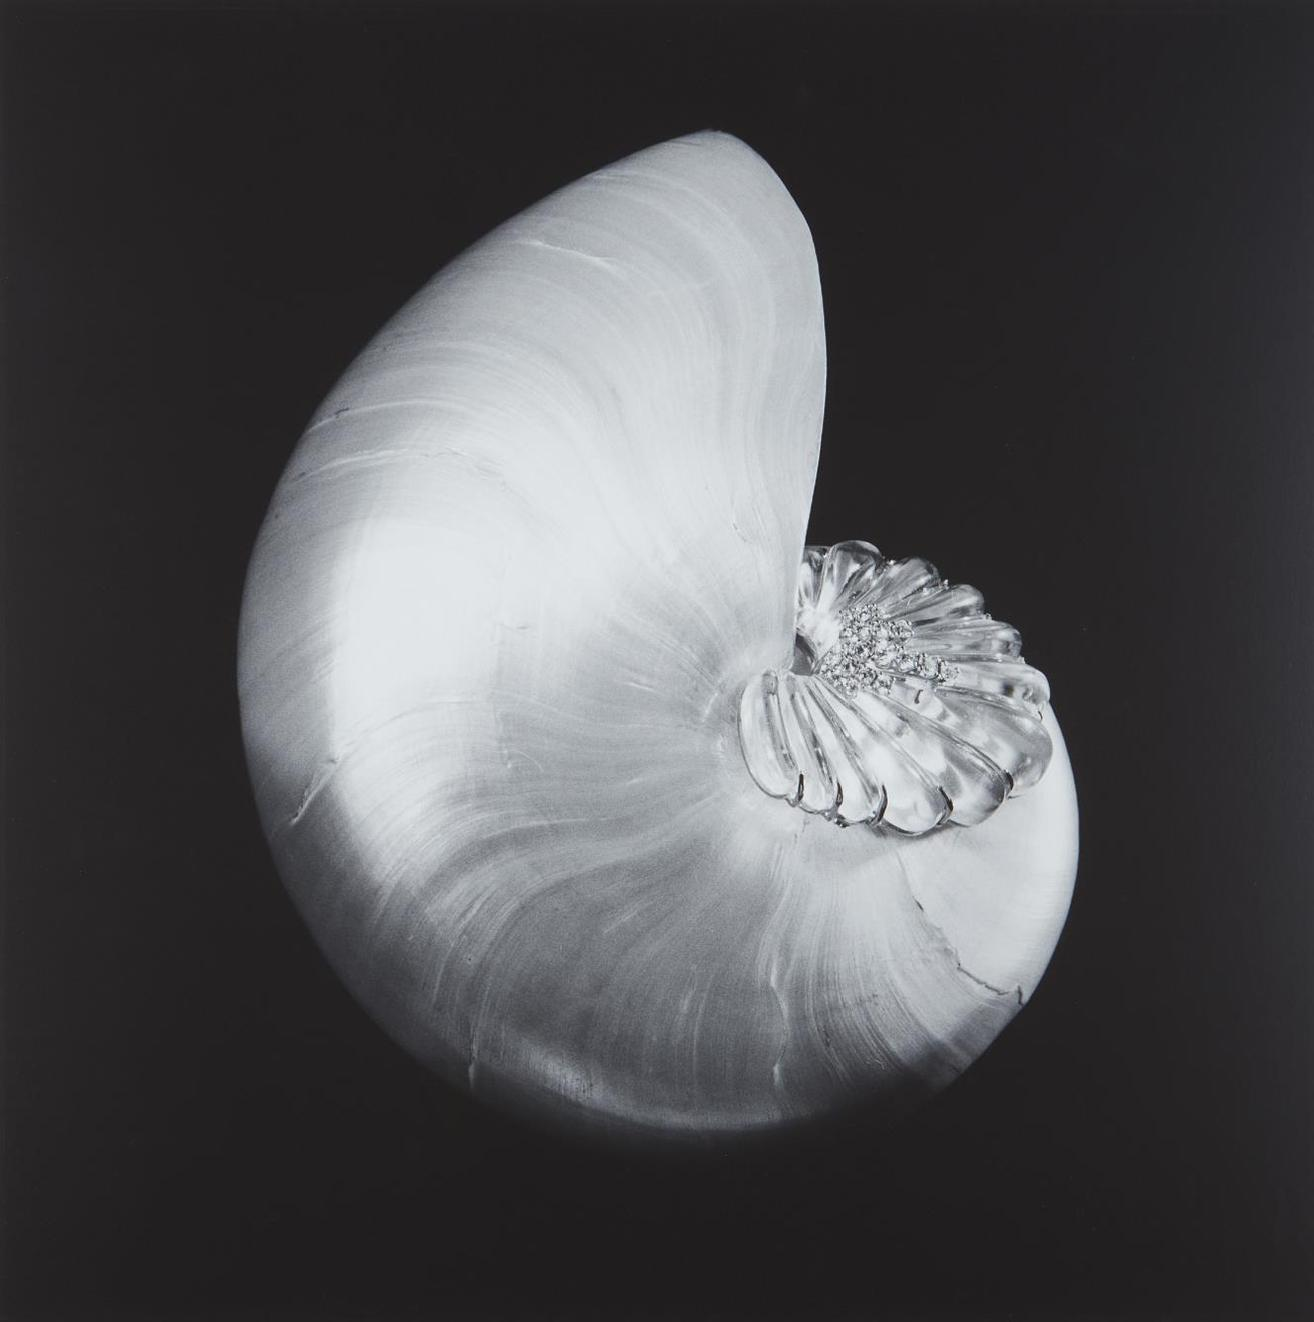 Robert Mapplethorpe-Shell And Crystal-1986